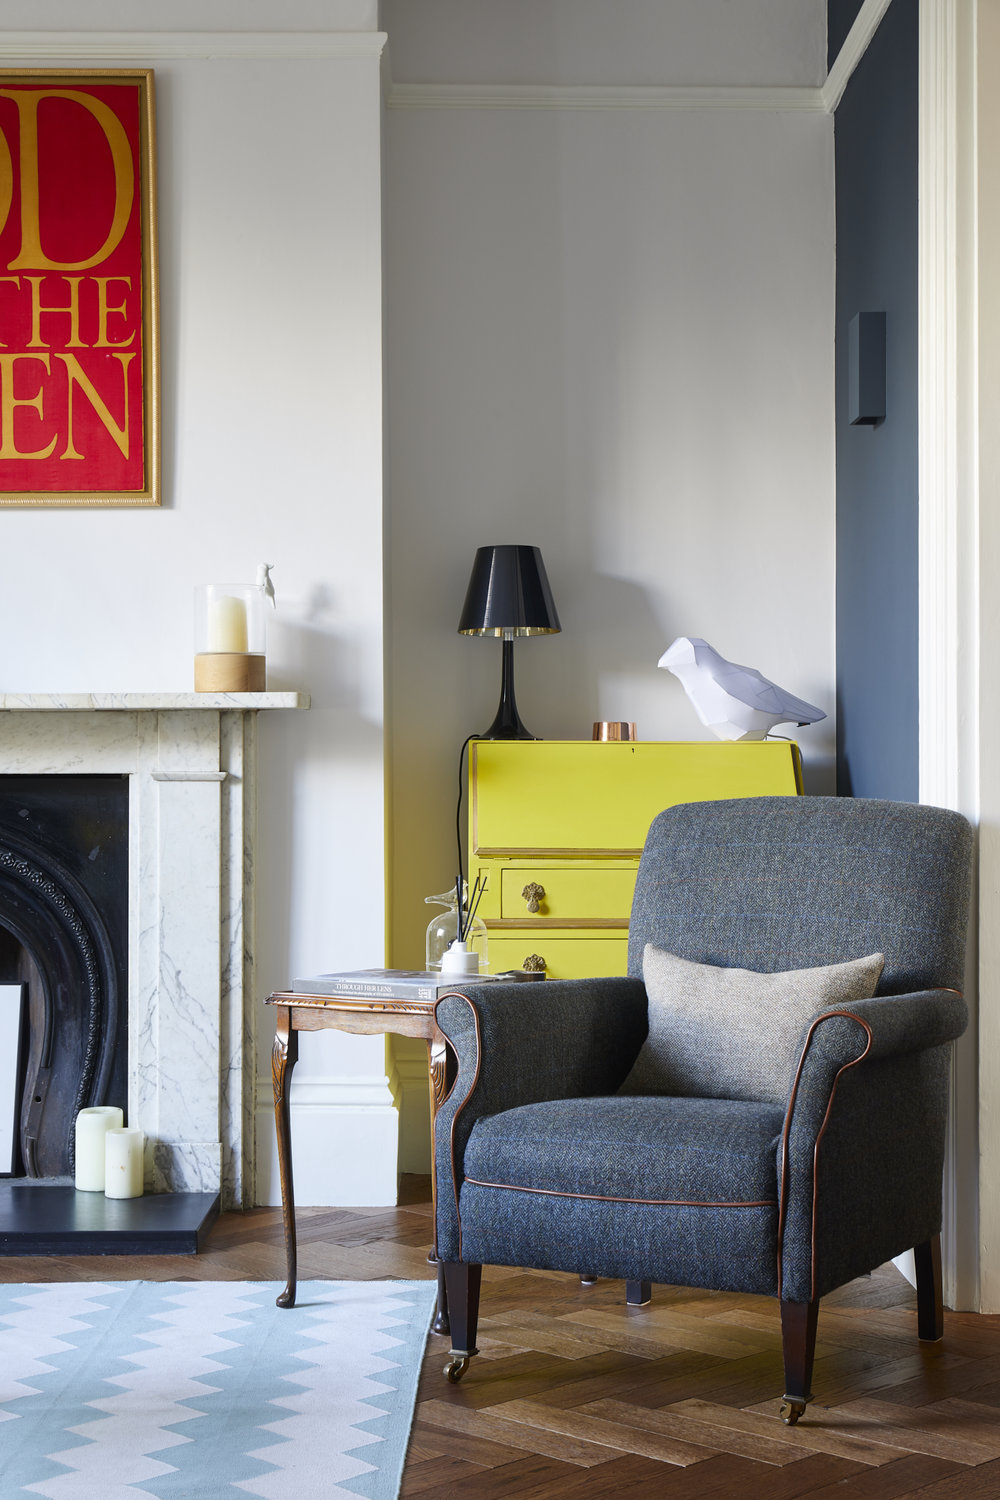 interior design in London town house